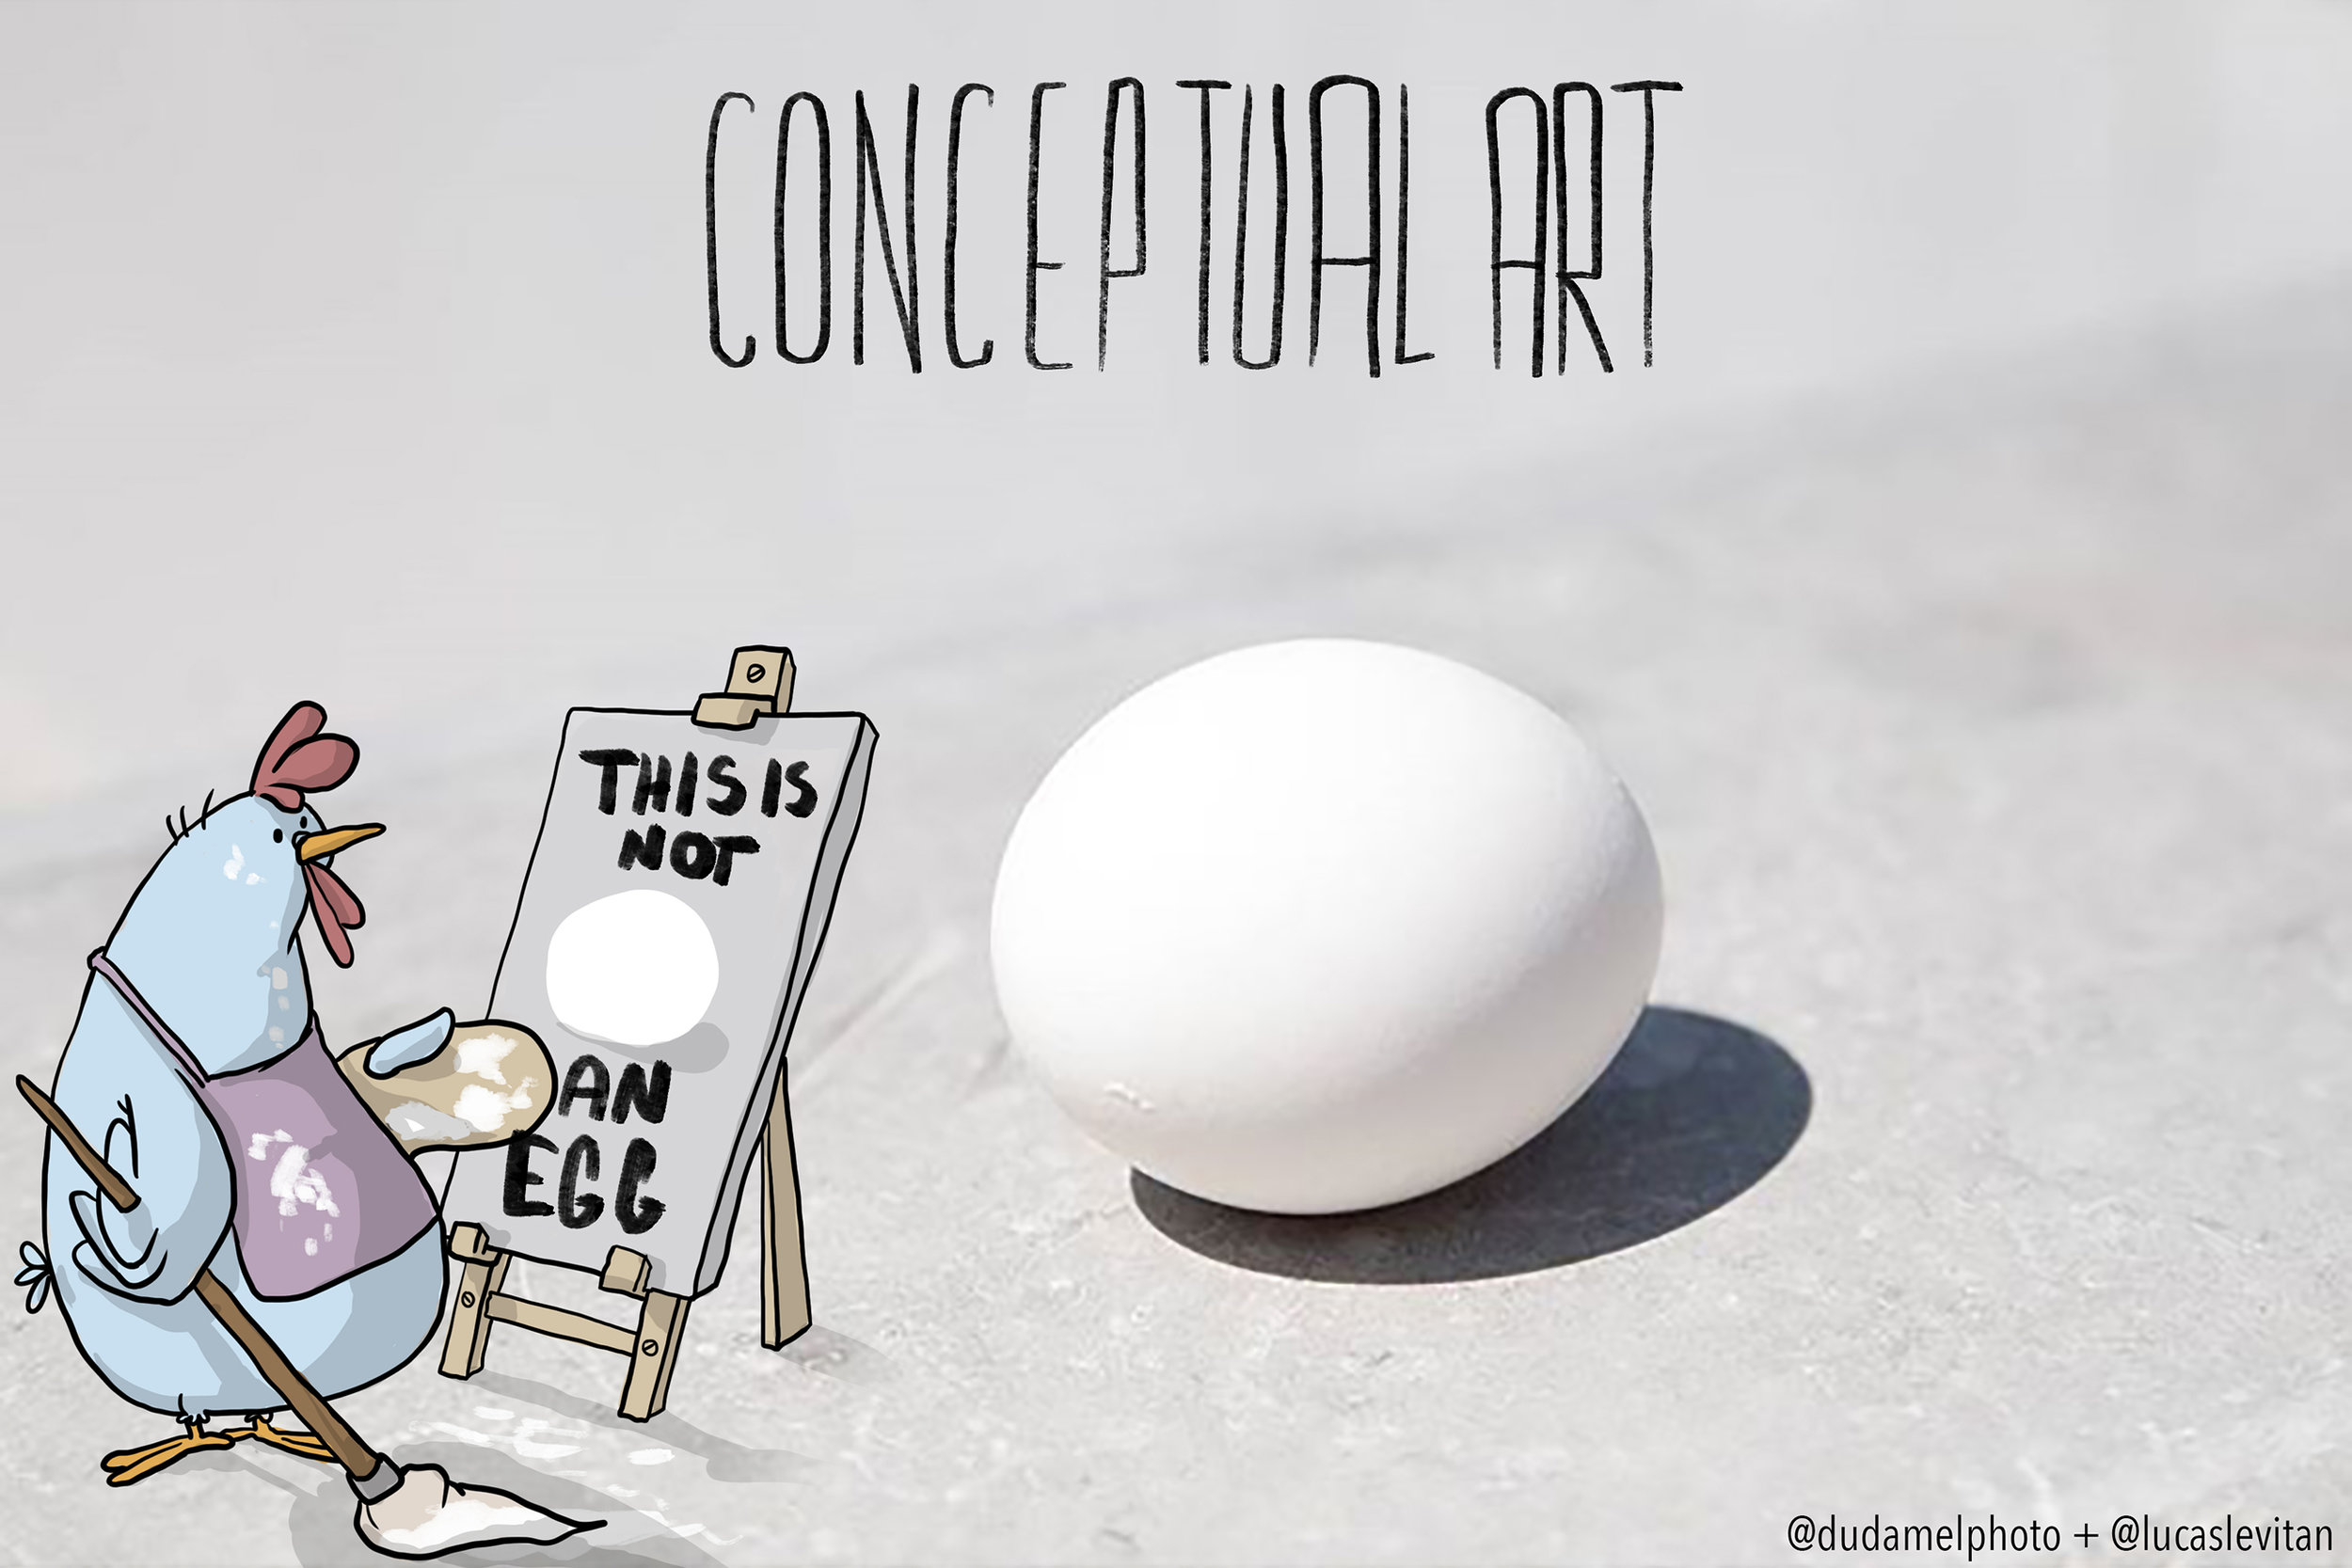 08 dudamelphoto EGG 06 painter conceptual art.jpg